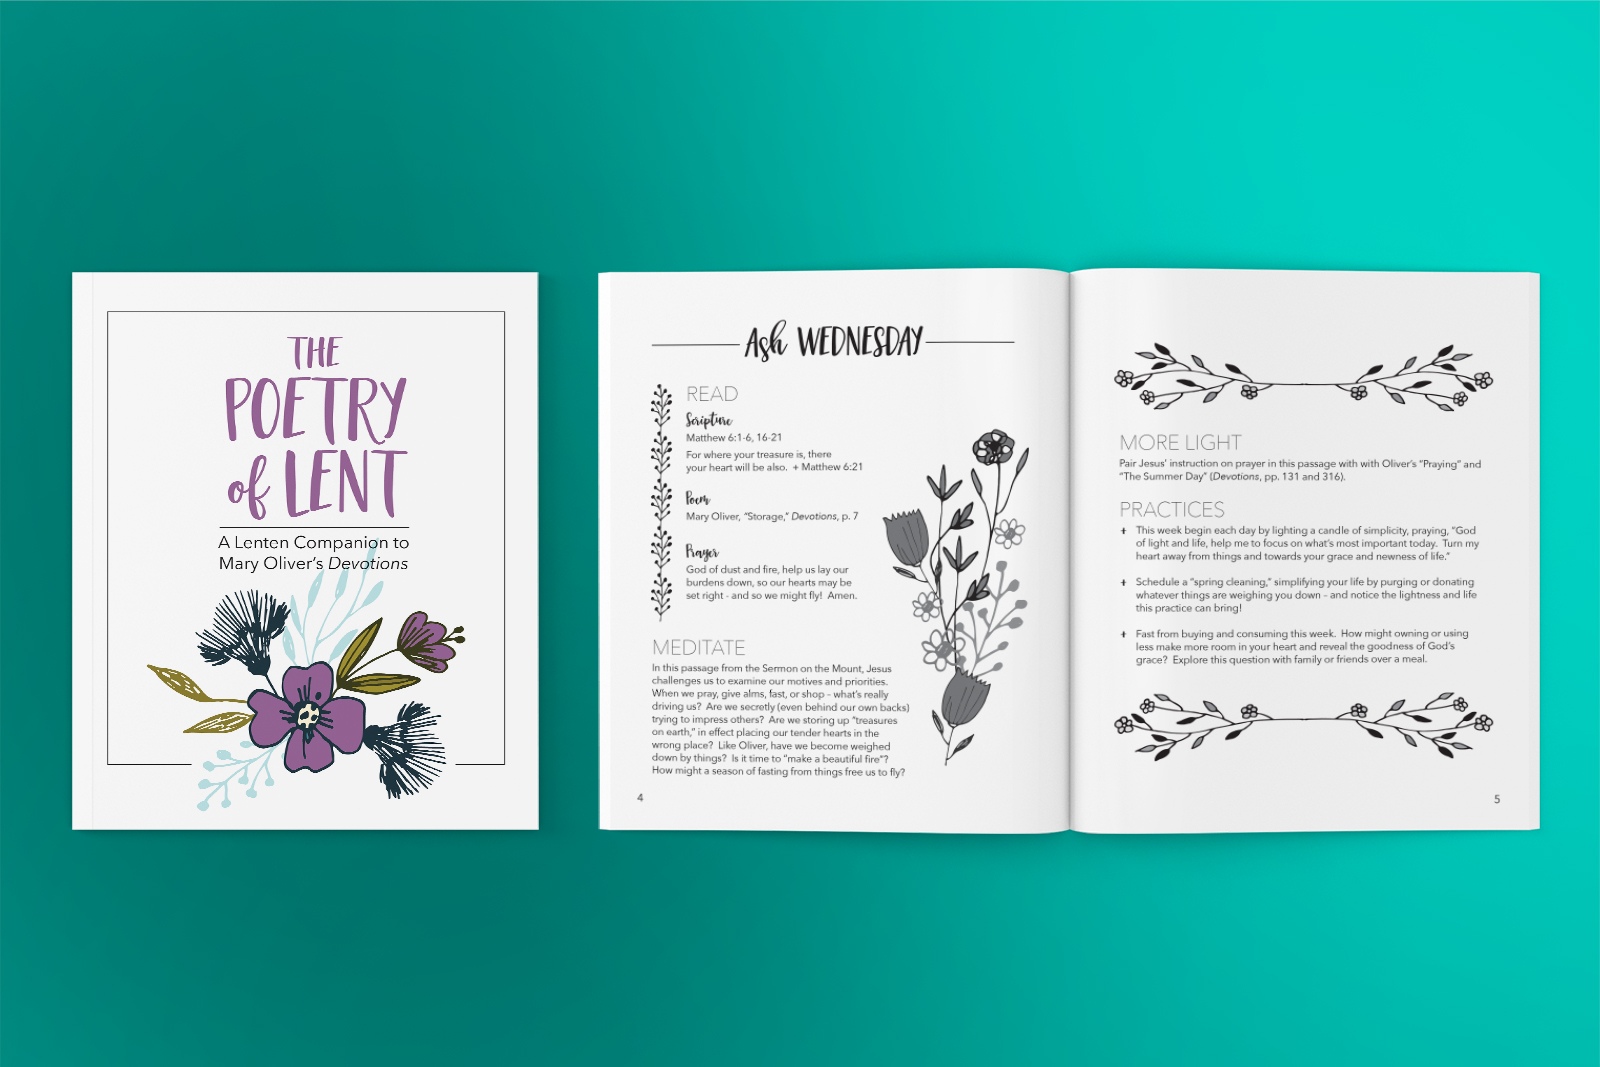 image regarding Printable Devotions named Spring is Coming: Lent Printable Supplies and Customizable